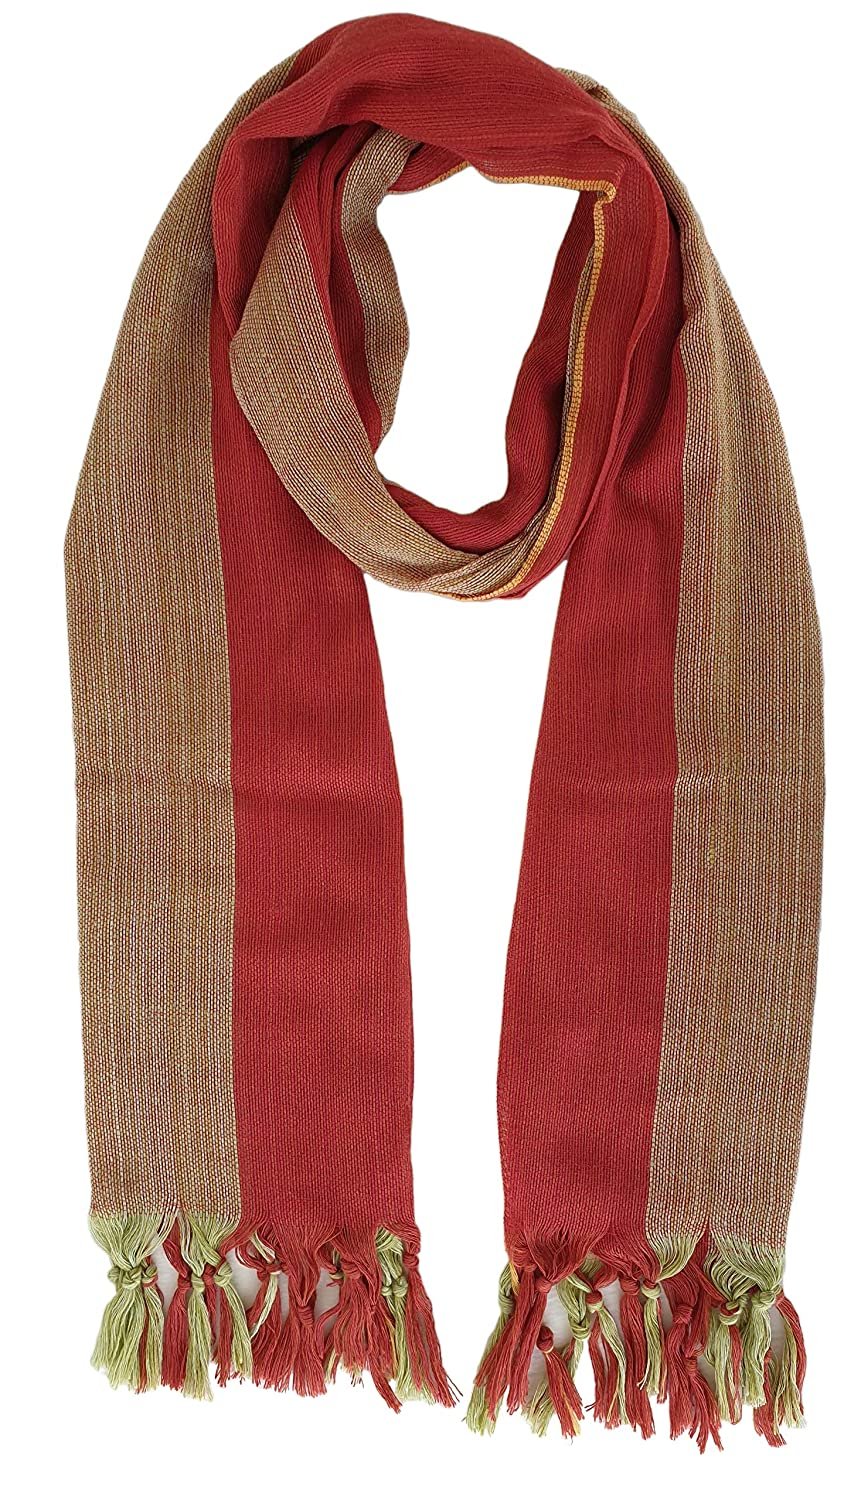 Tan Lowest price challenge Be super welcome Red Striped Cotton Woven Scarf Tassel Green Lig Fringed Sage